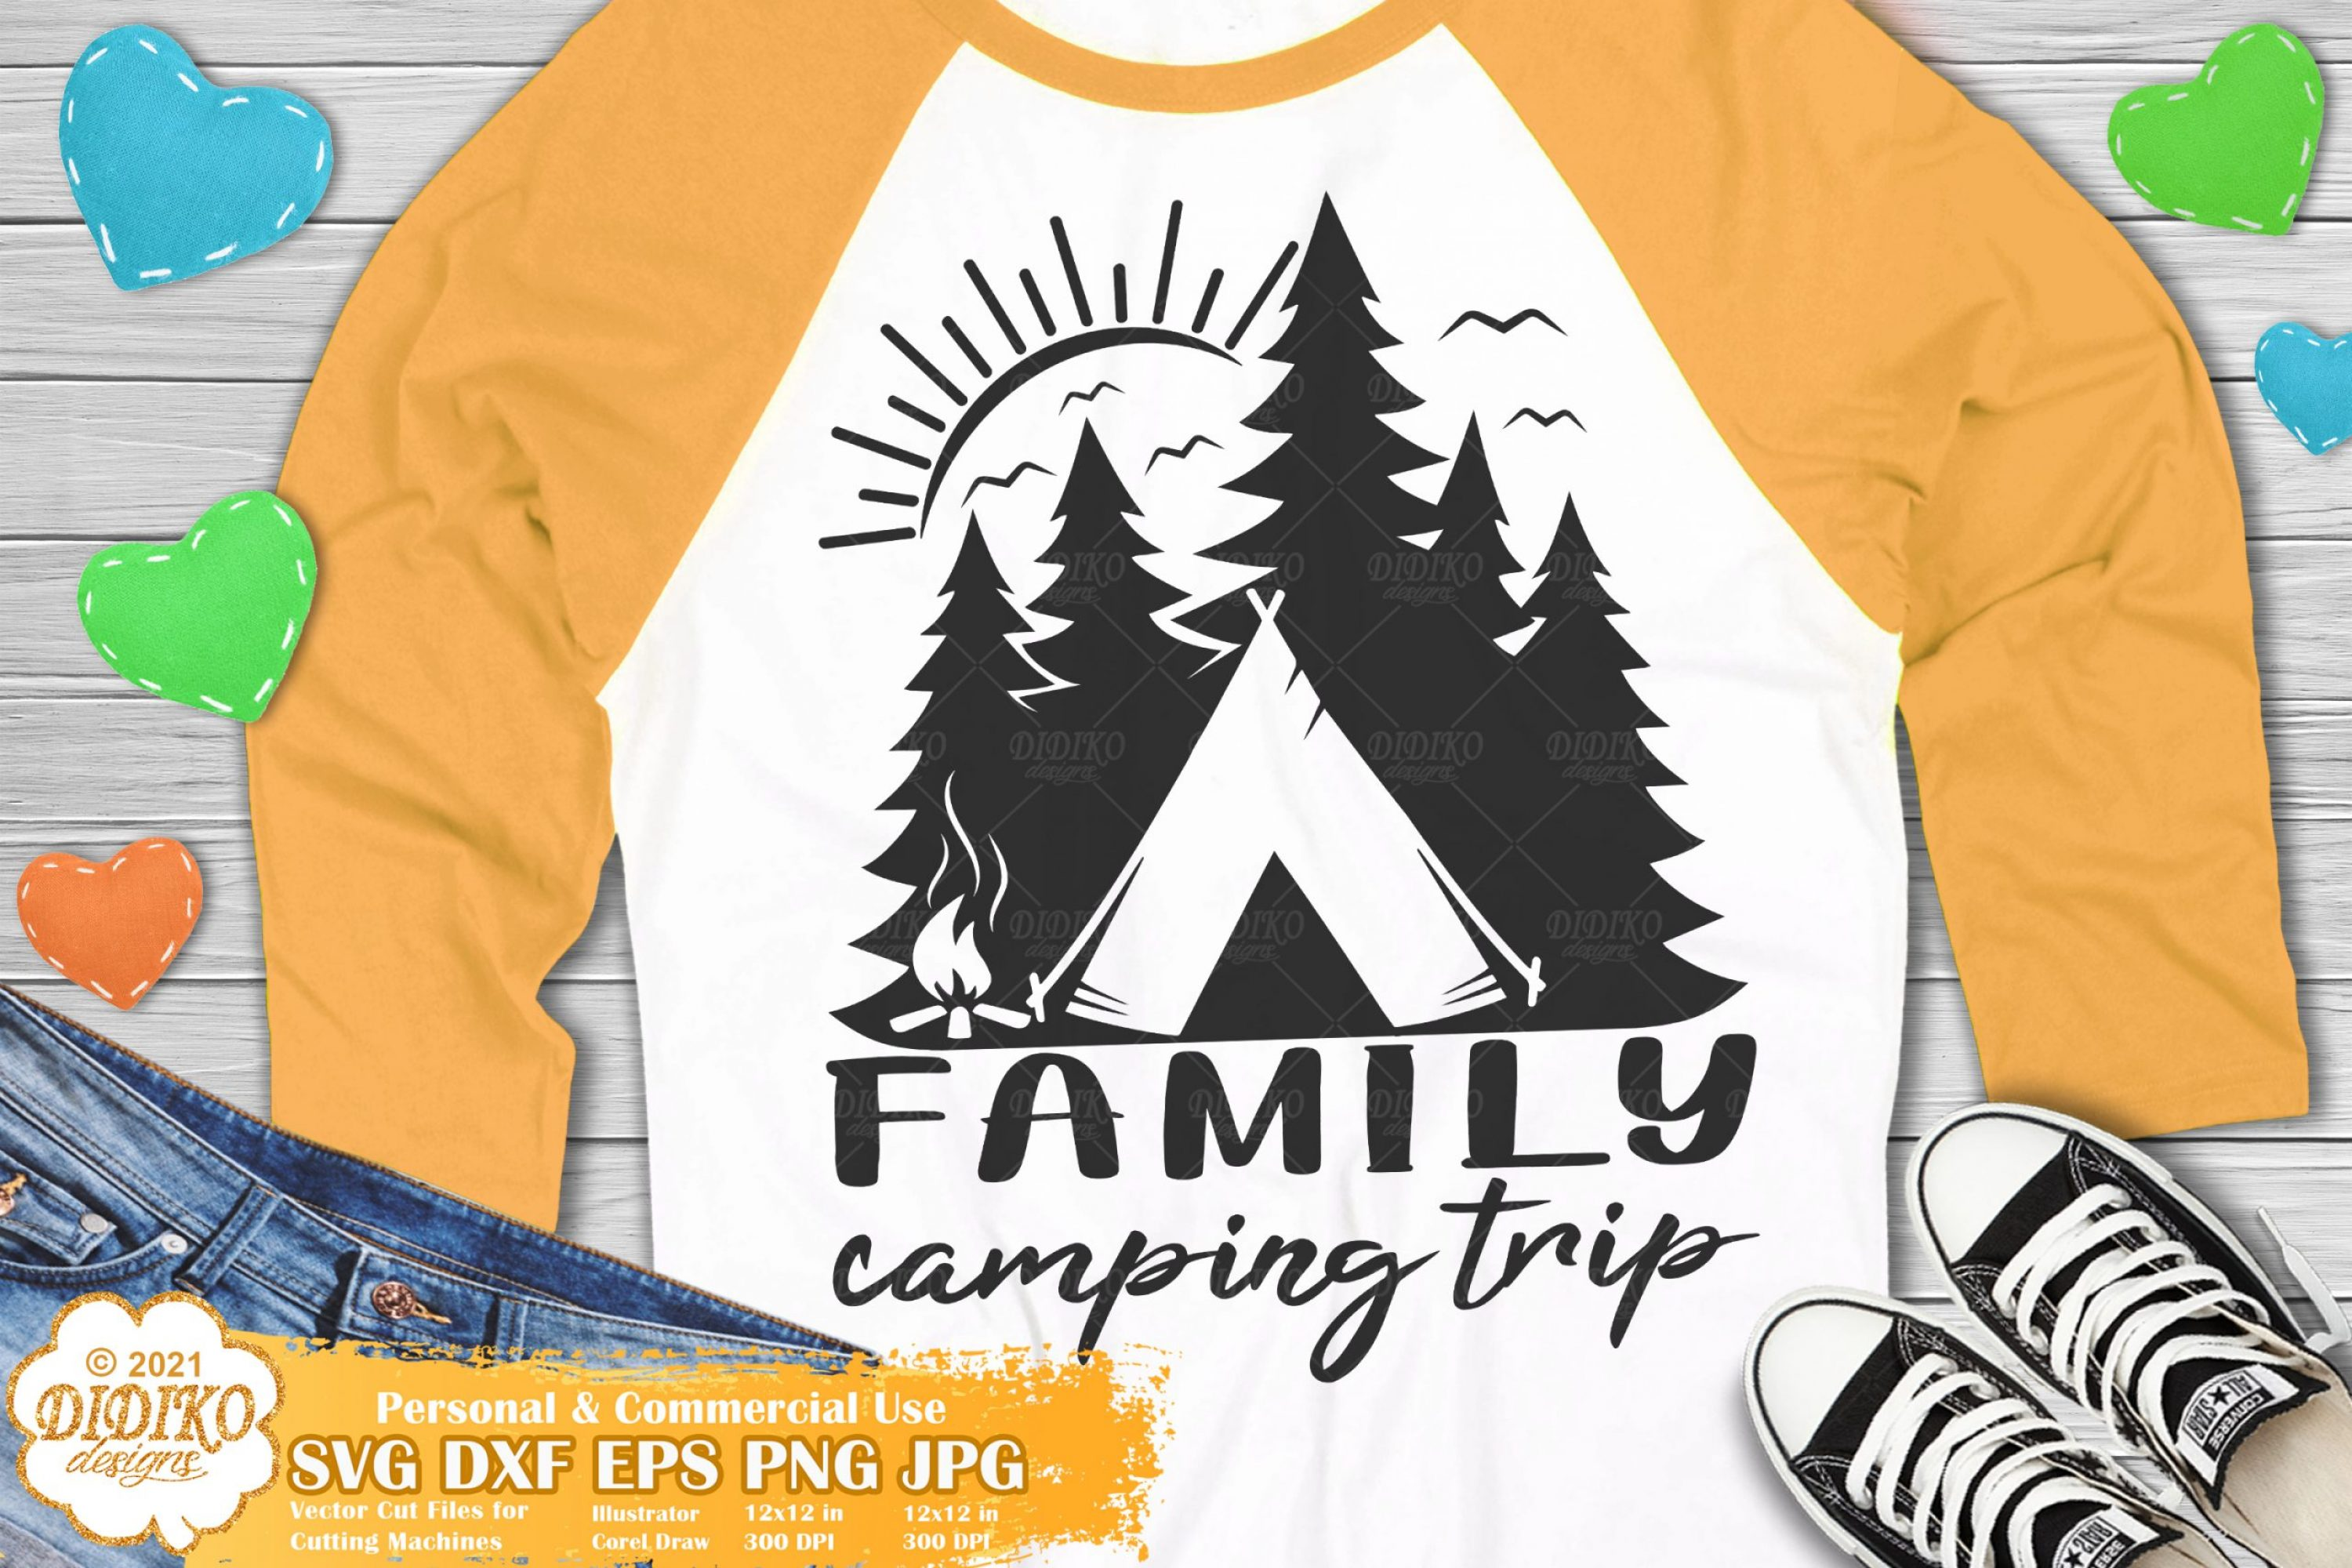 Family Camping Trip SVG #1, Adventure, Camper Svg